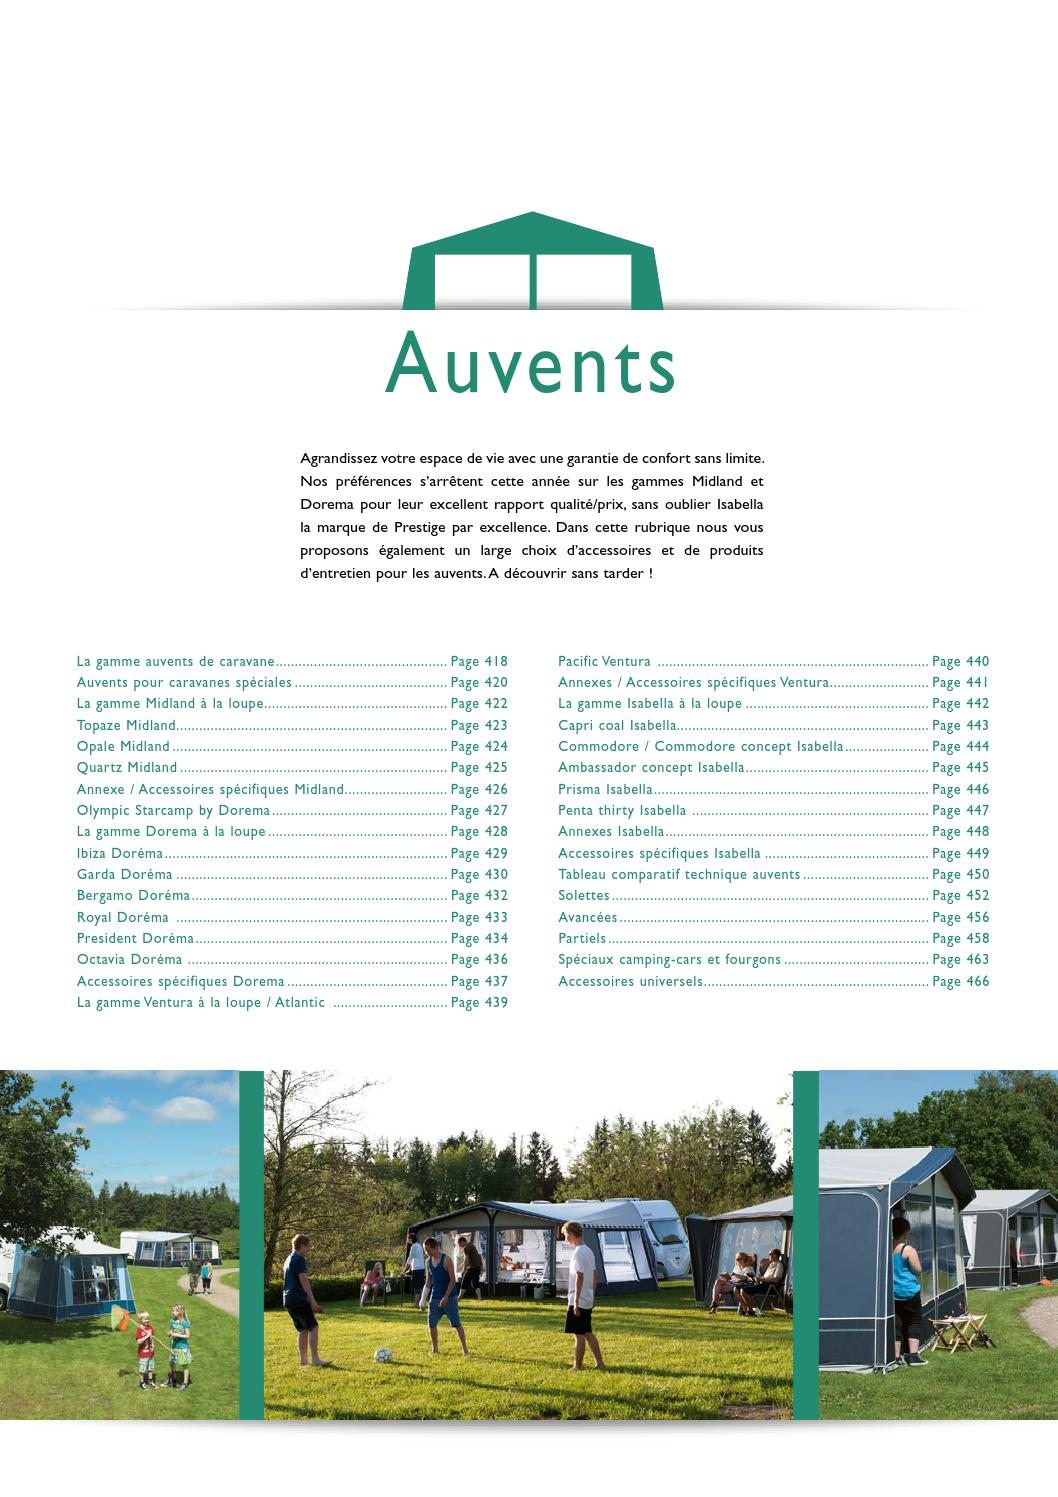 Catalogue 2015 - Auvents by Narbonne Accessoires - issuu 3c2c3bcfa5a4